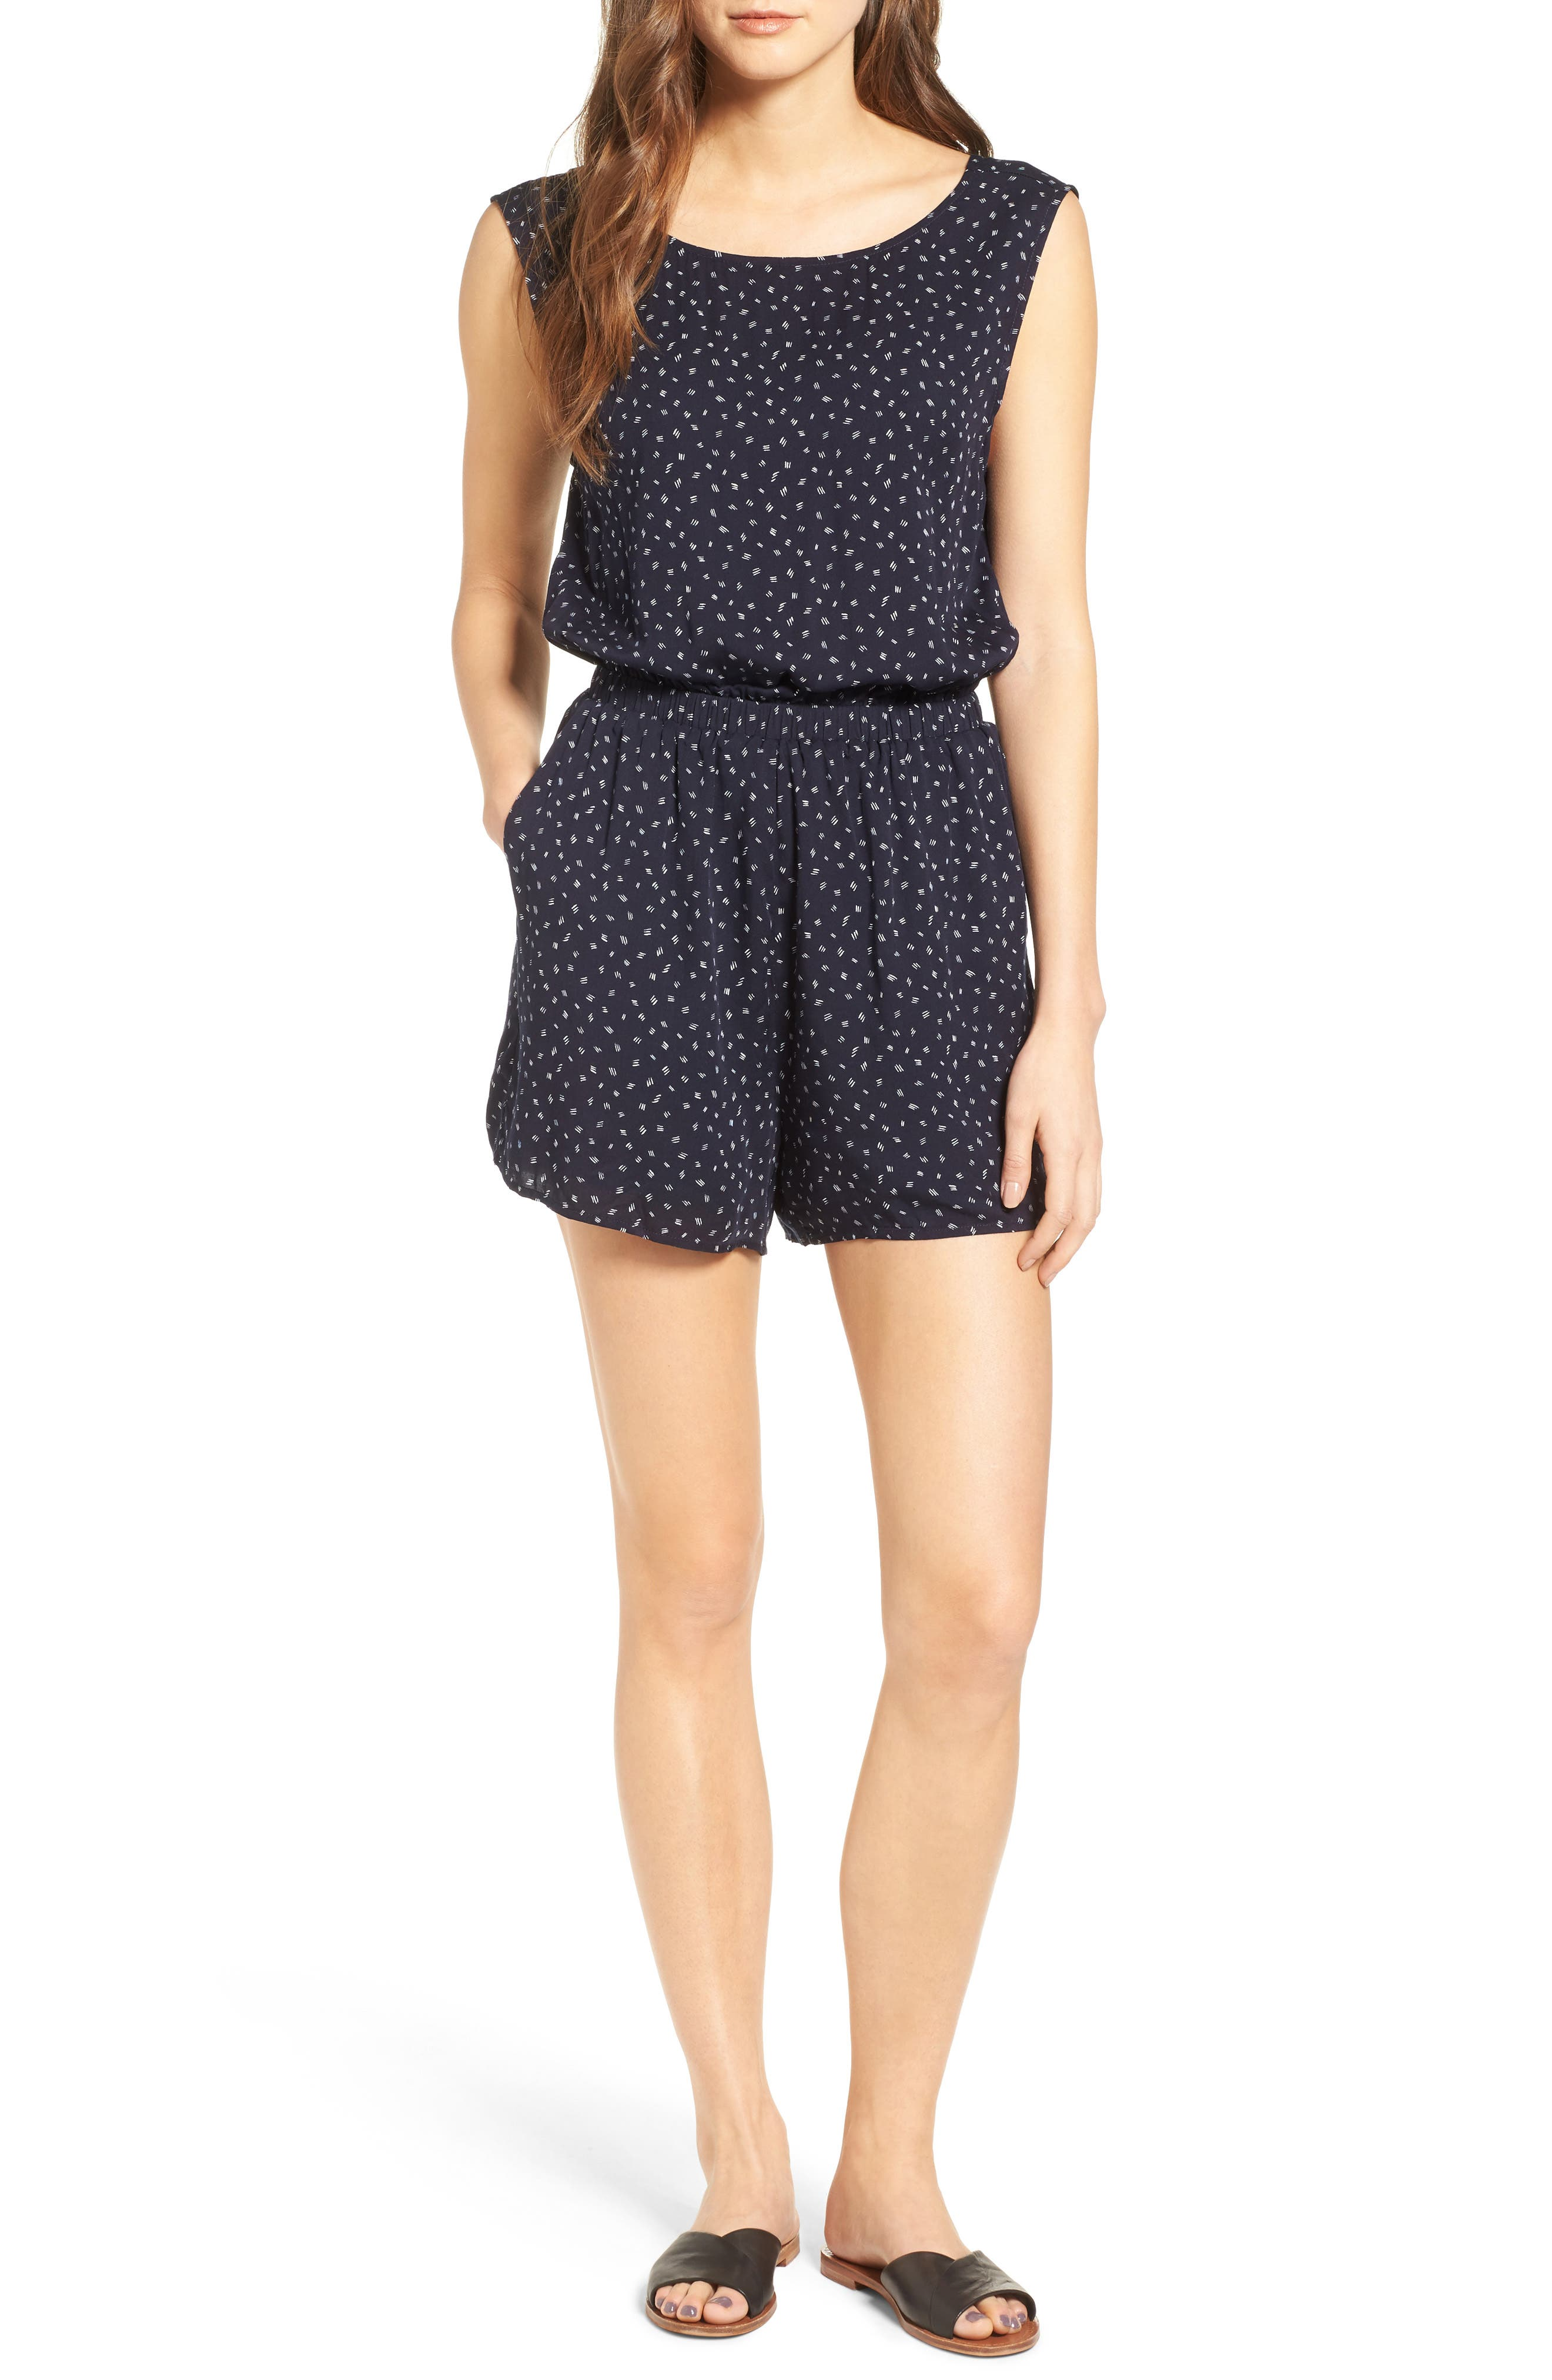 CUPCAKES AND CASHMERE Gianni Button Back Romper